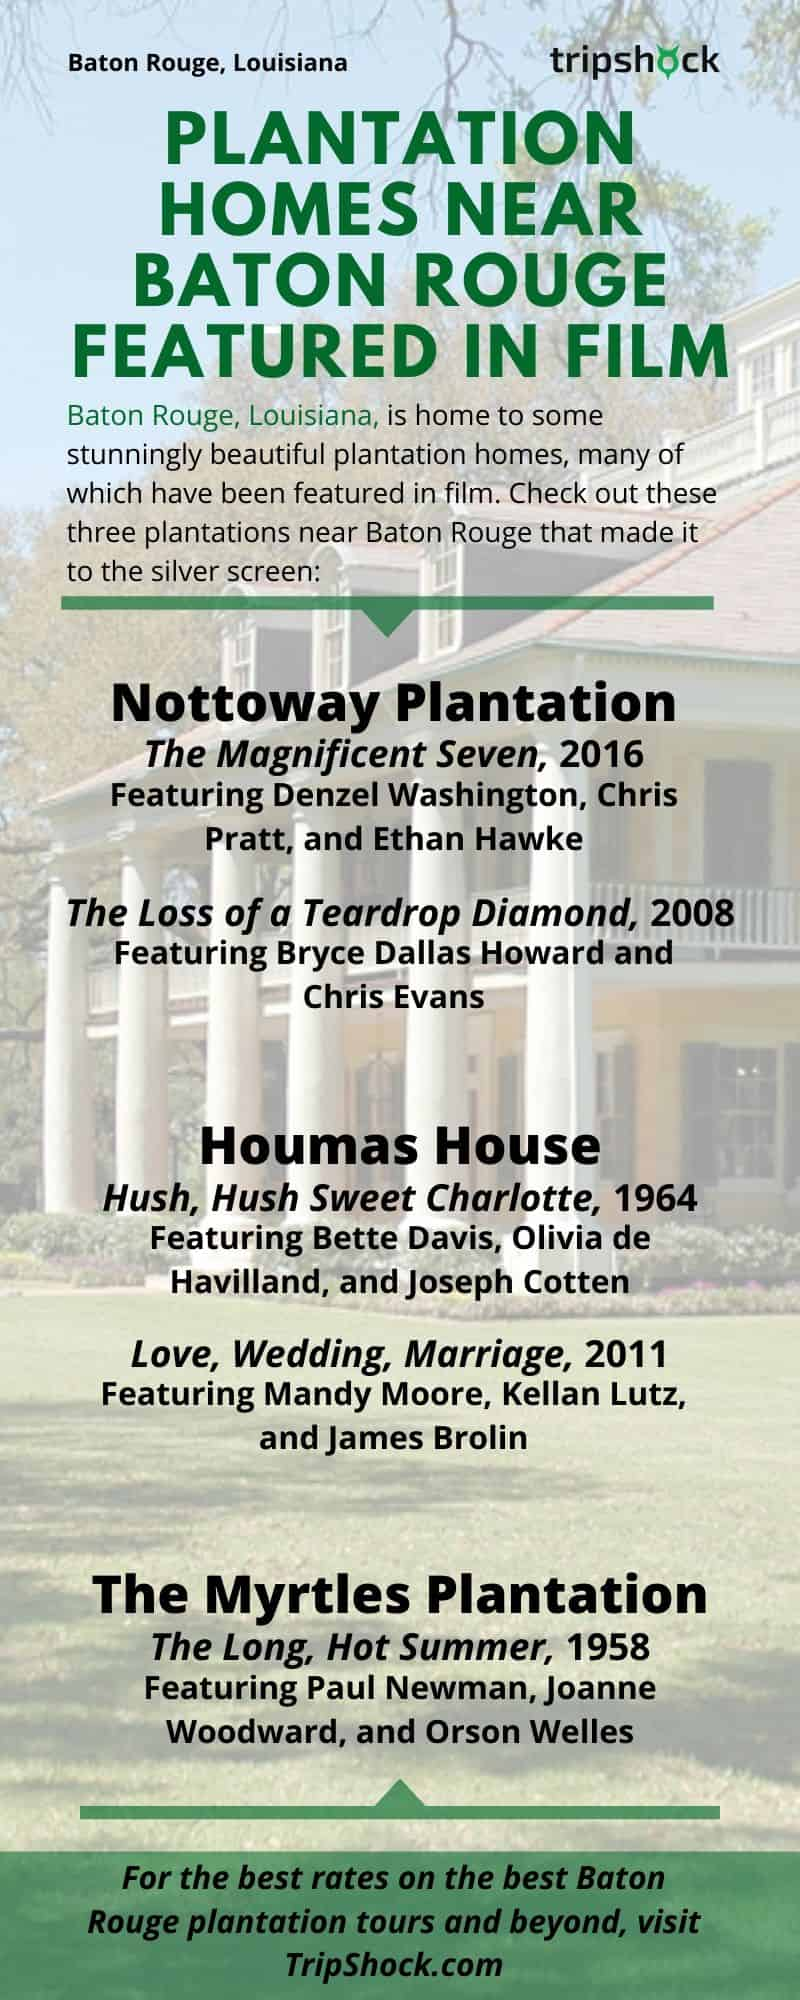 Plantation Homes Near Baton Rouge Featured in Film